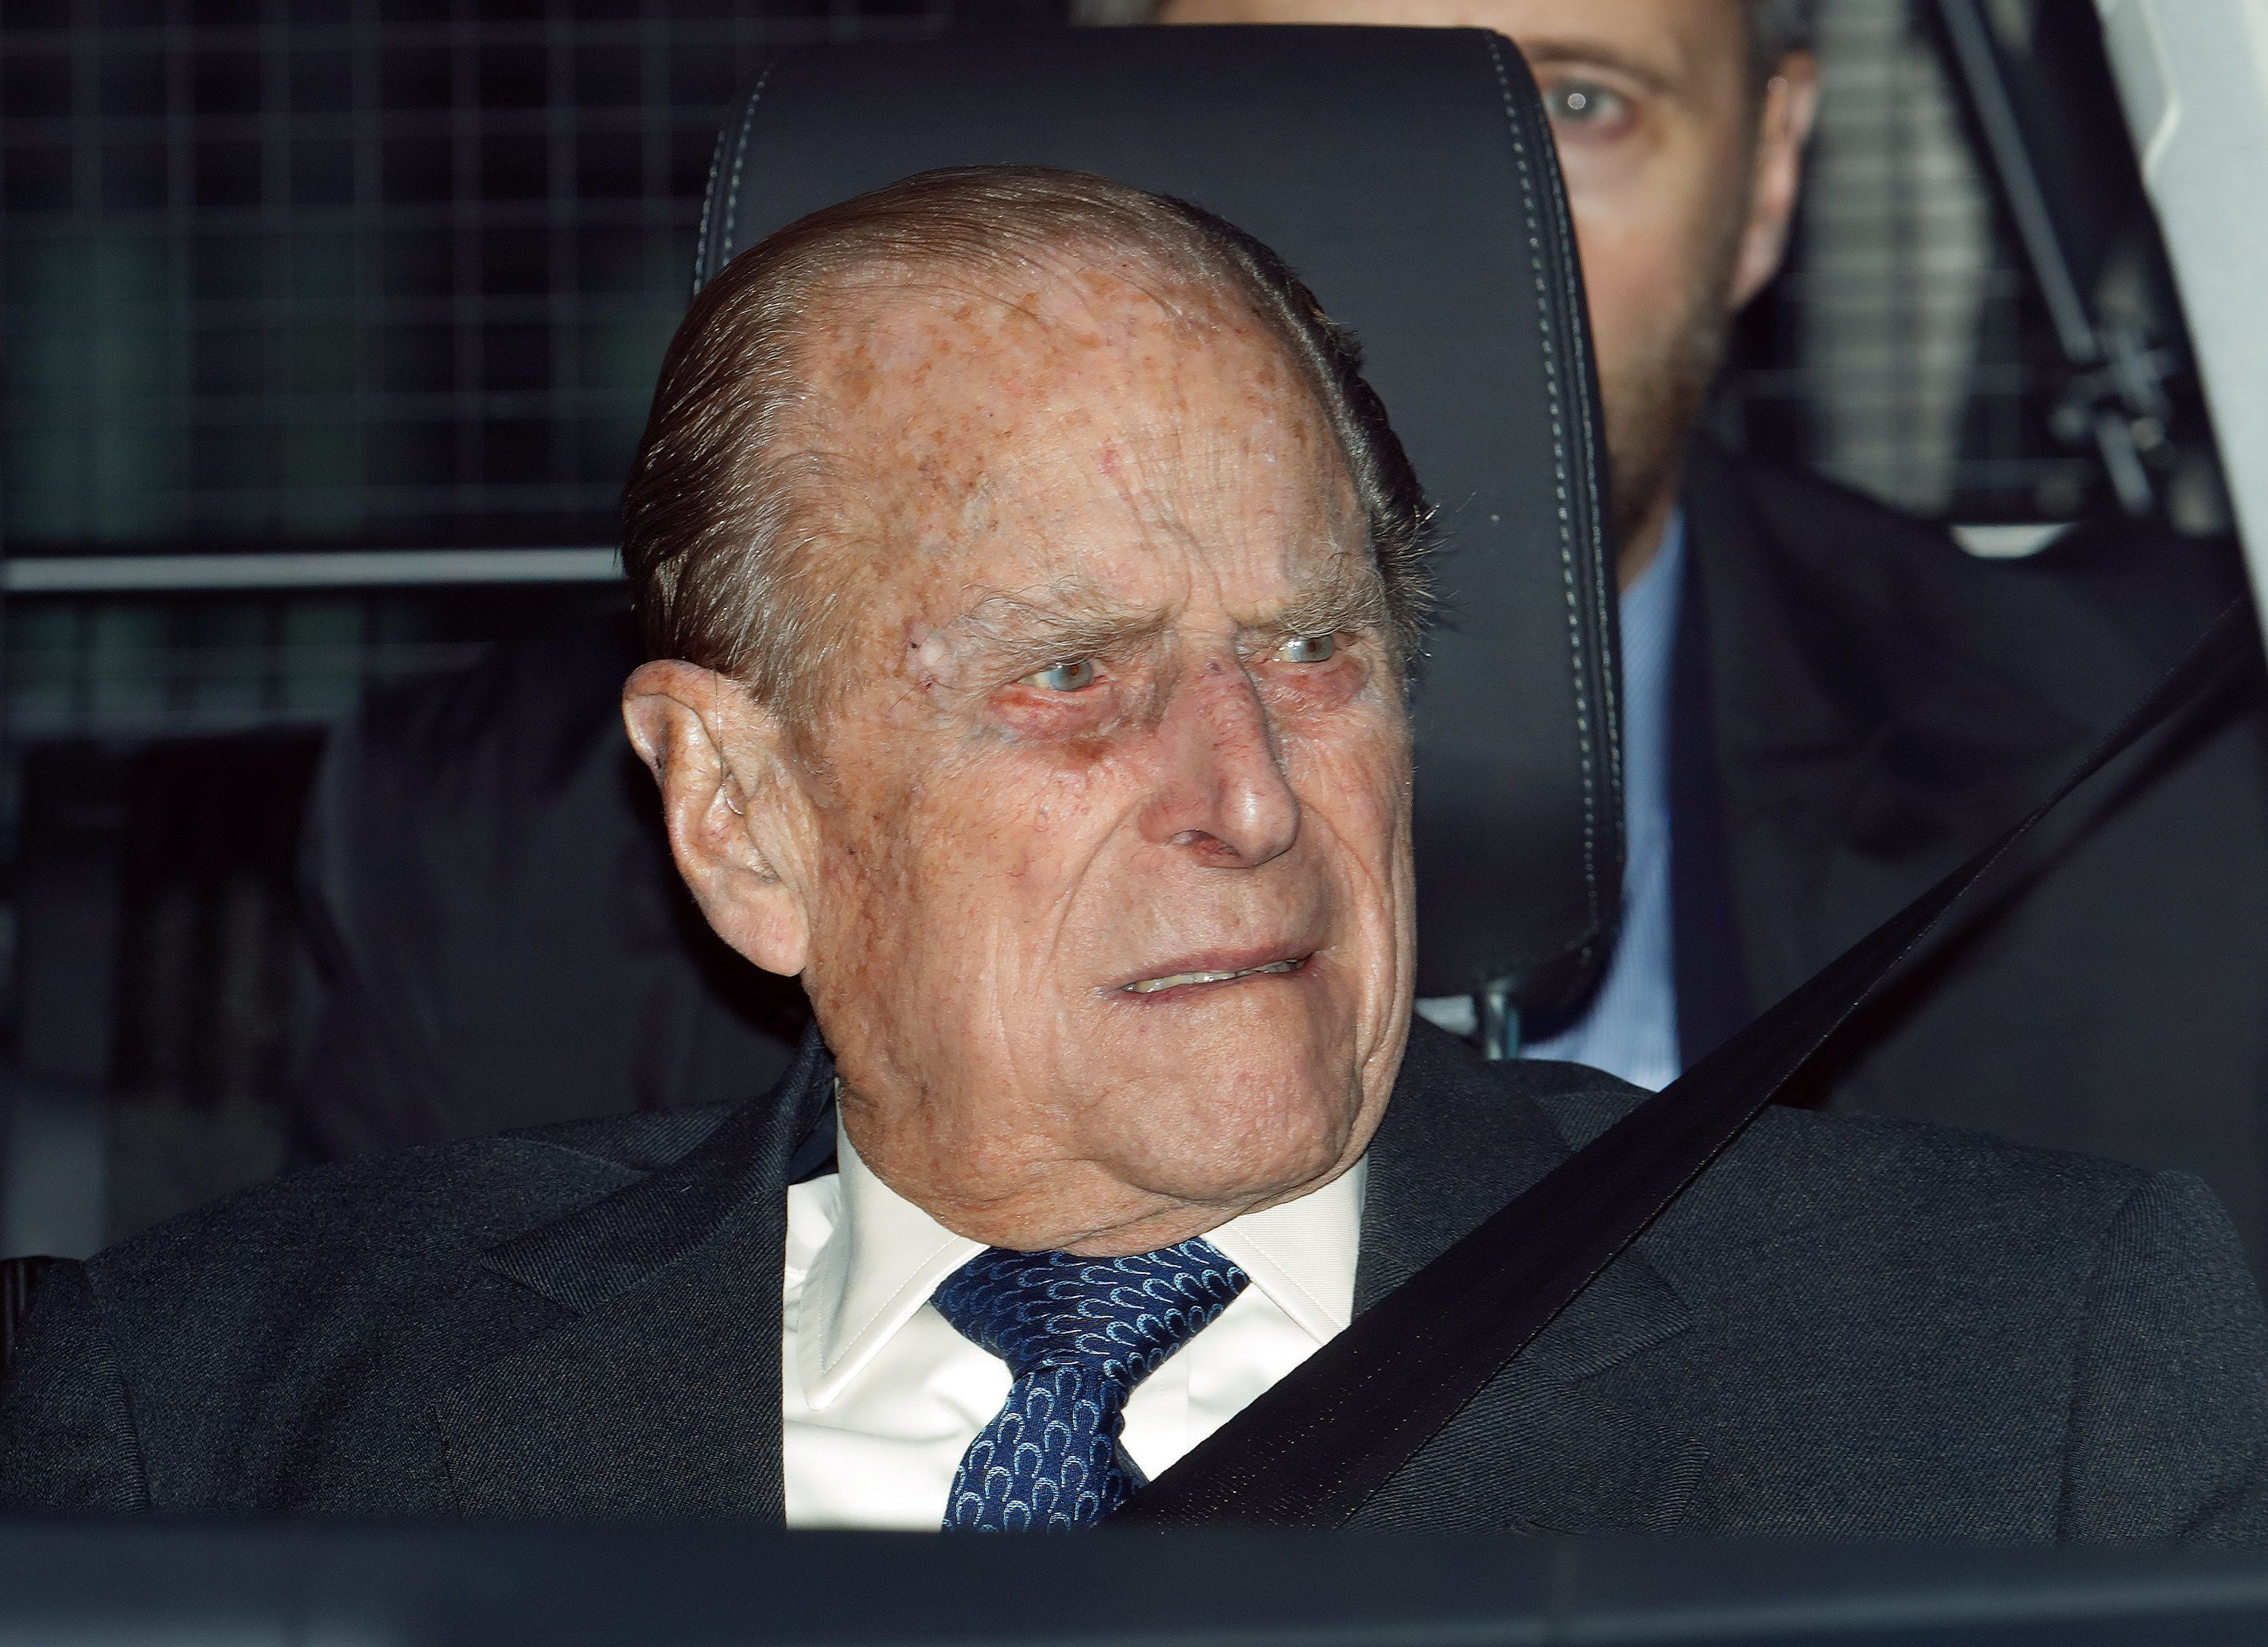 Prince Philip surrenders his driving licence